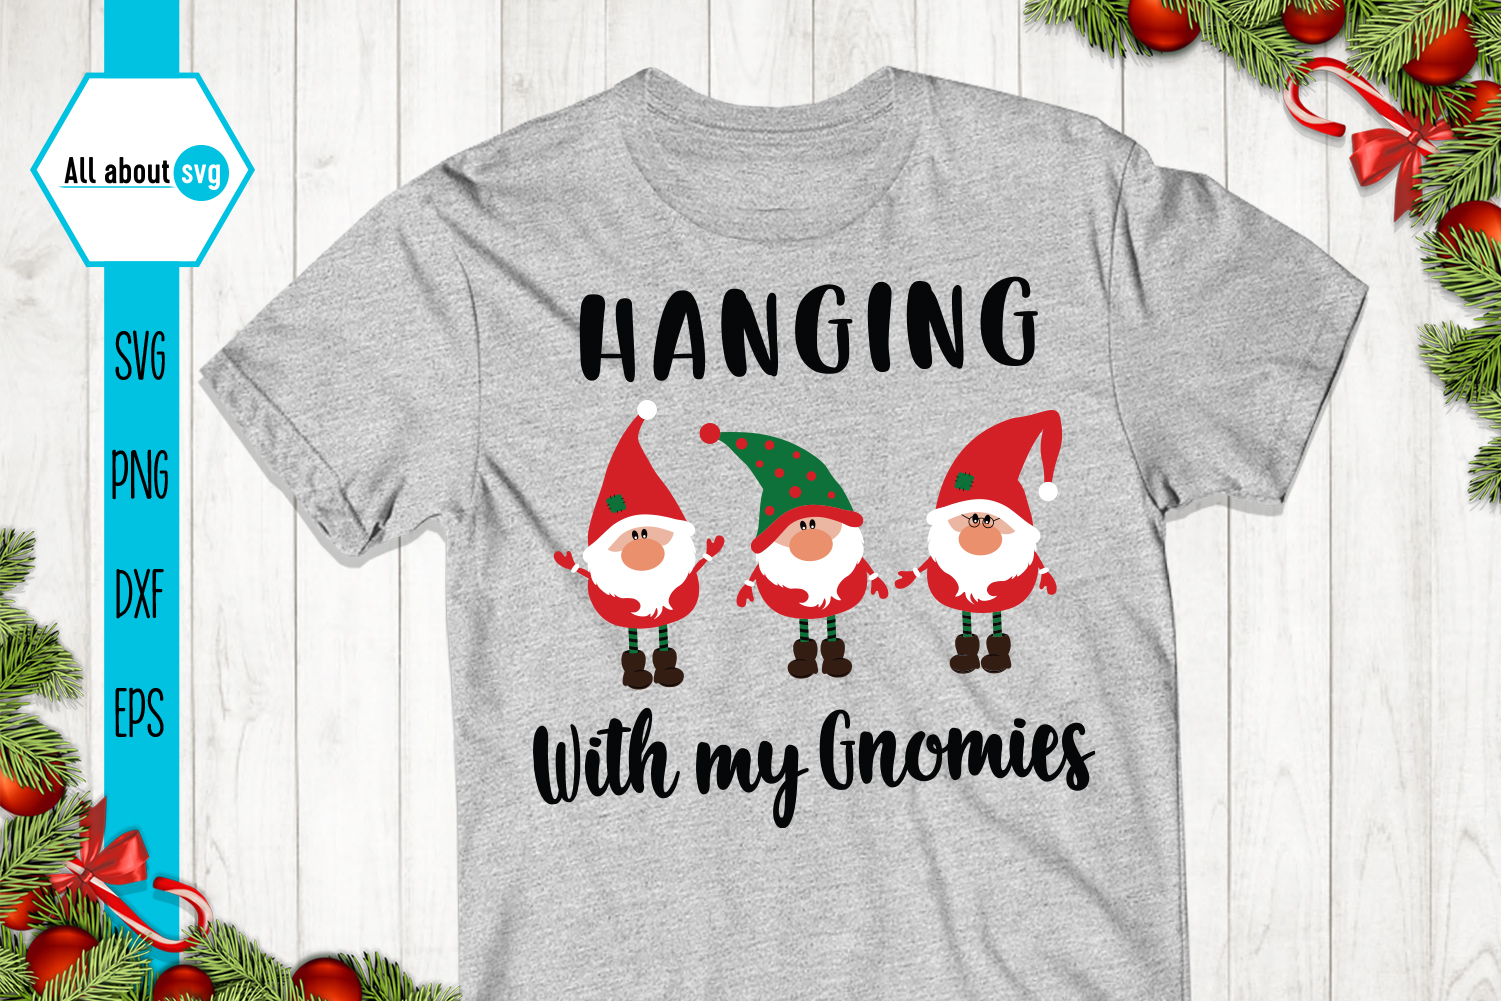 Hanging With My Gnomies Svg example image 2